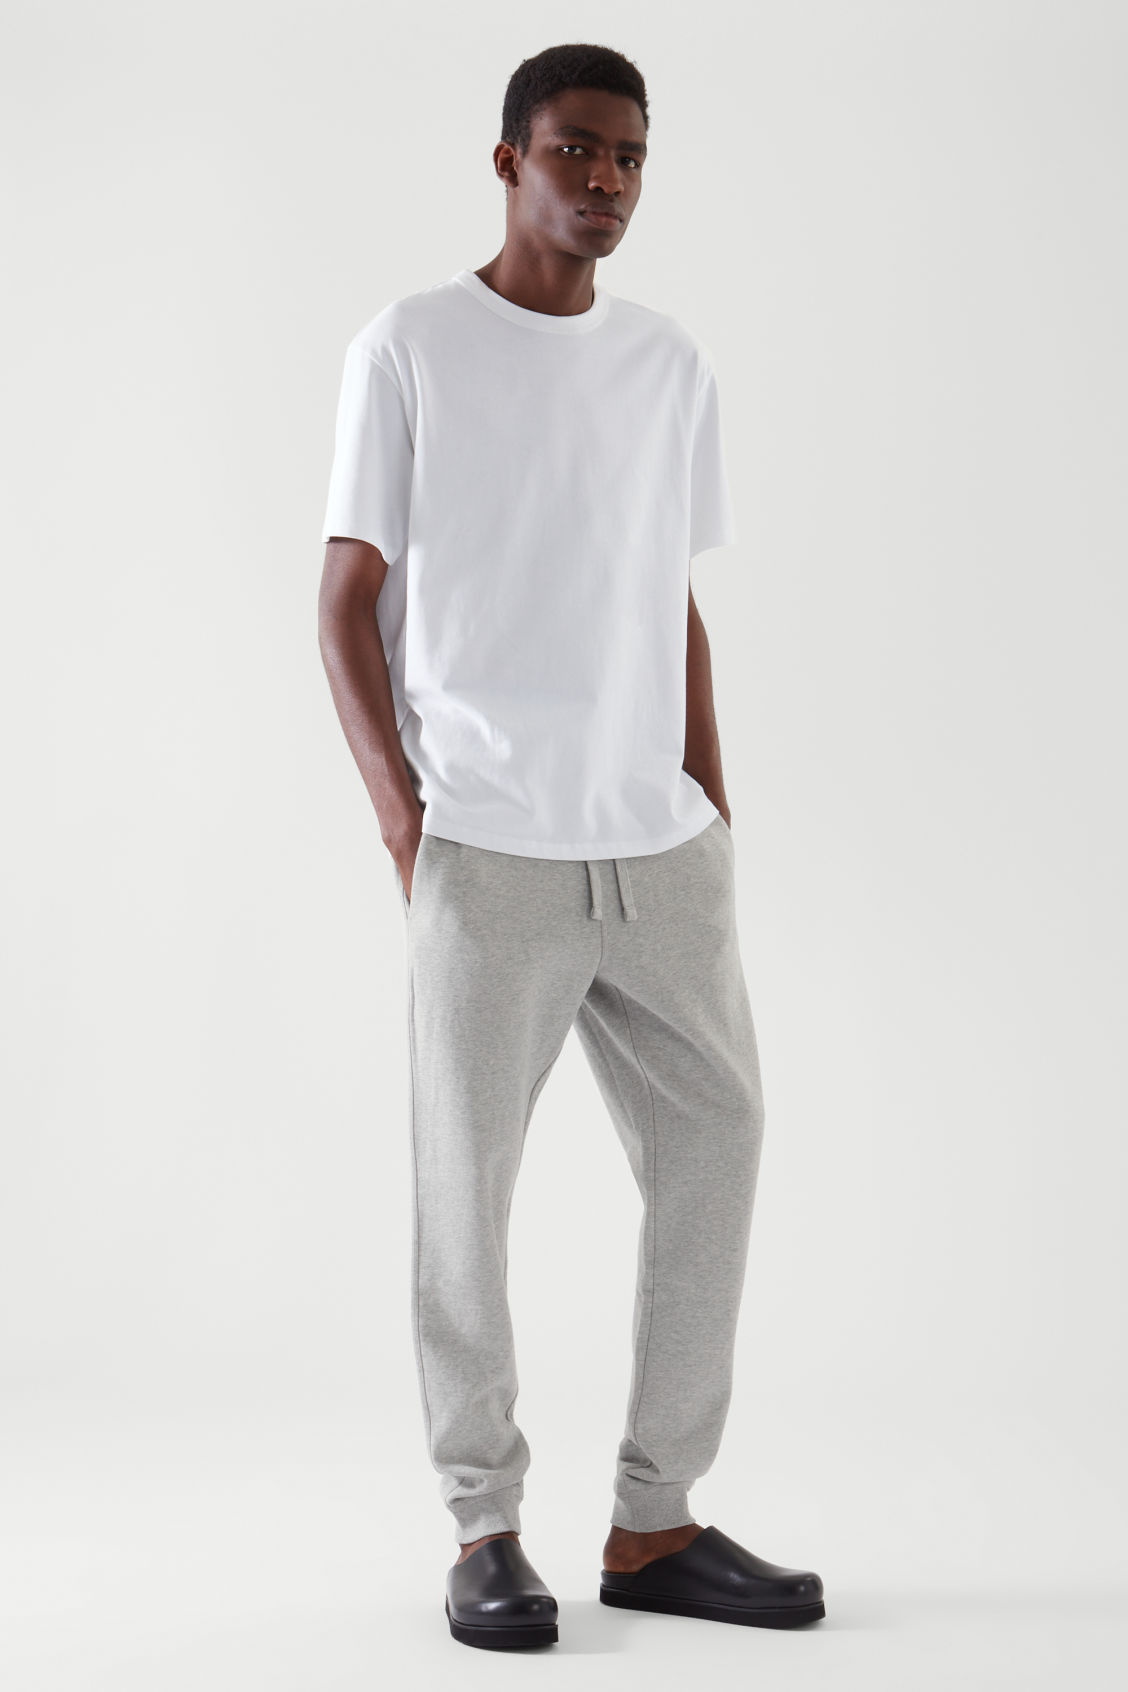 COS RELAXED-FIT DRAWSTRING JOGGERS,LIGHT GREY